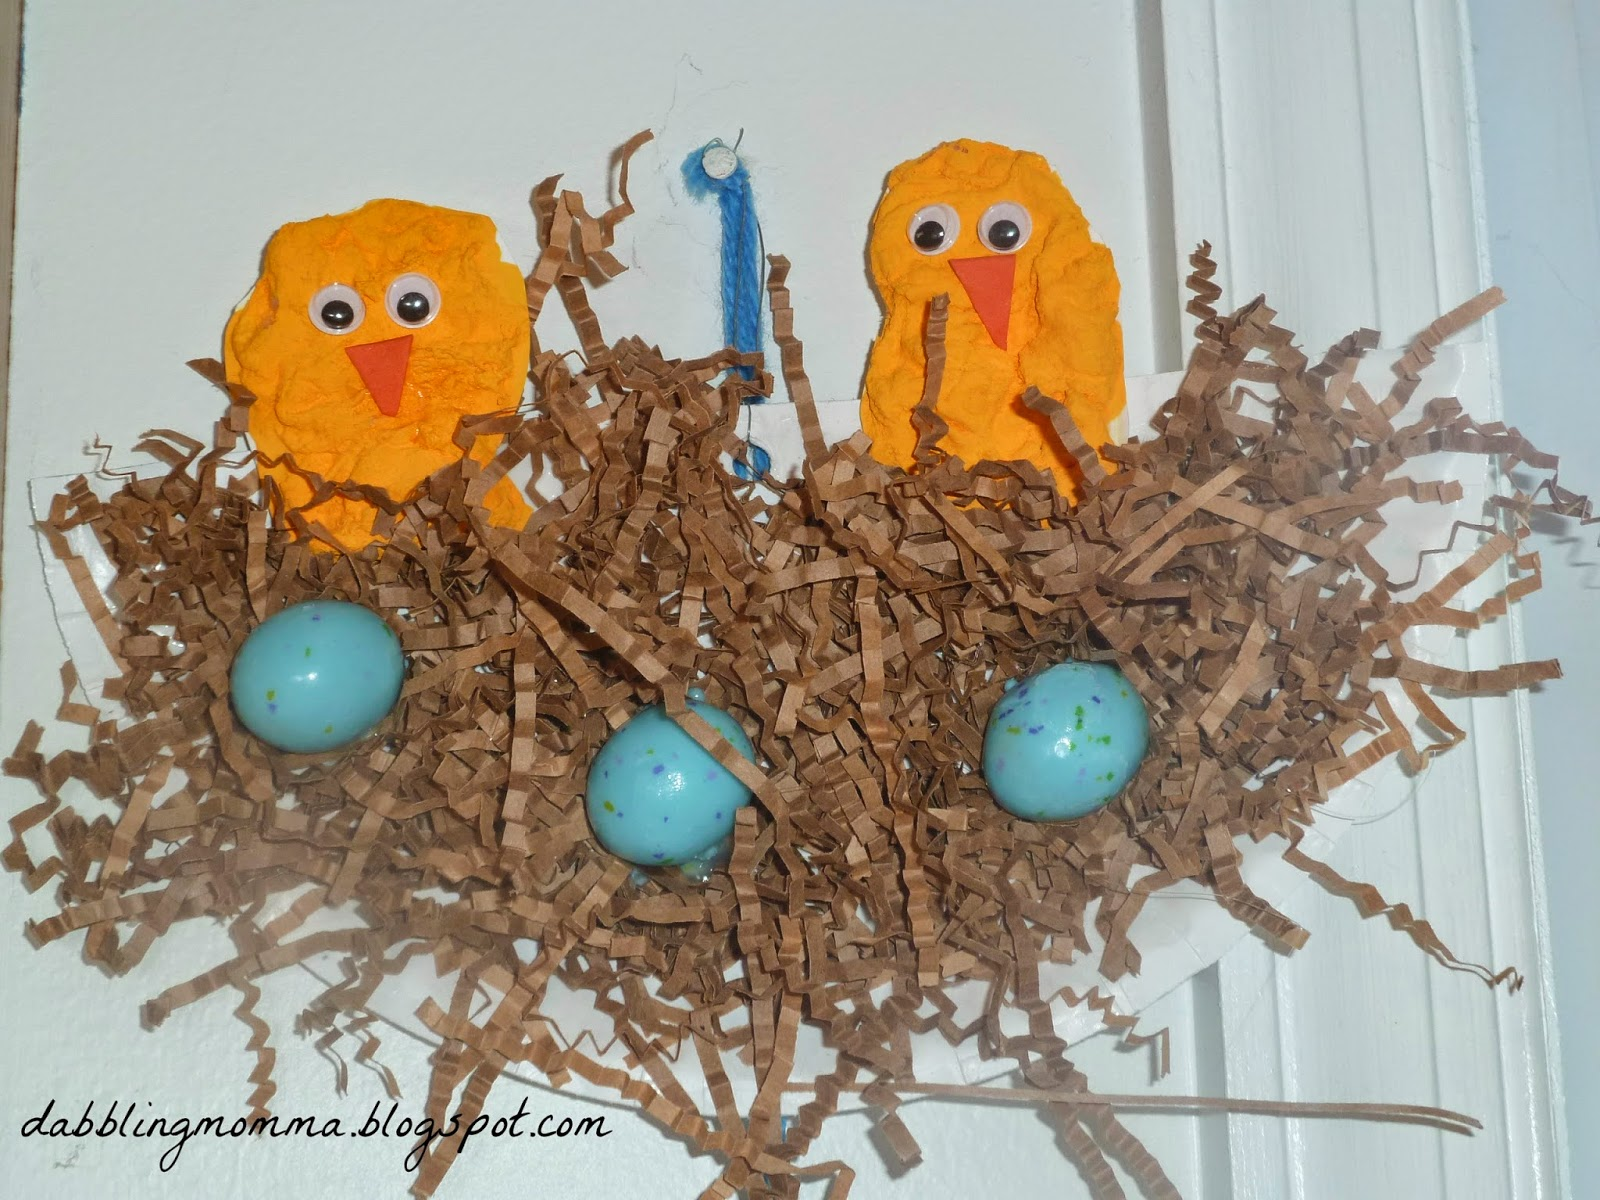 http://dabblingmomma.blogspot.com/2014/04/birds-nest-with-eggs.html